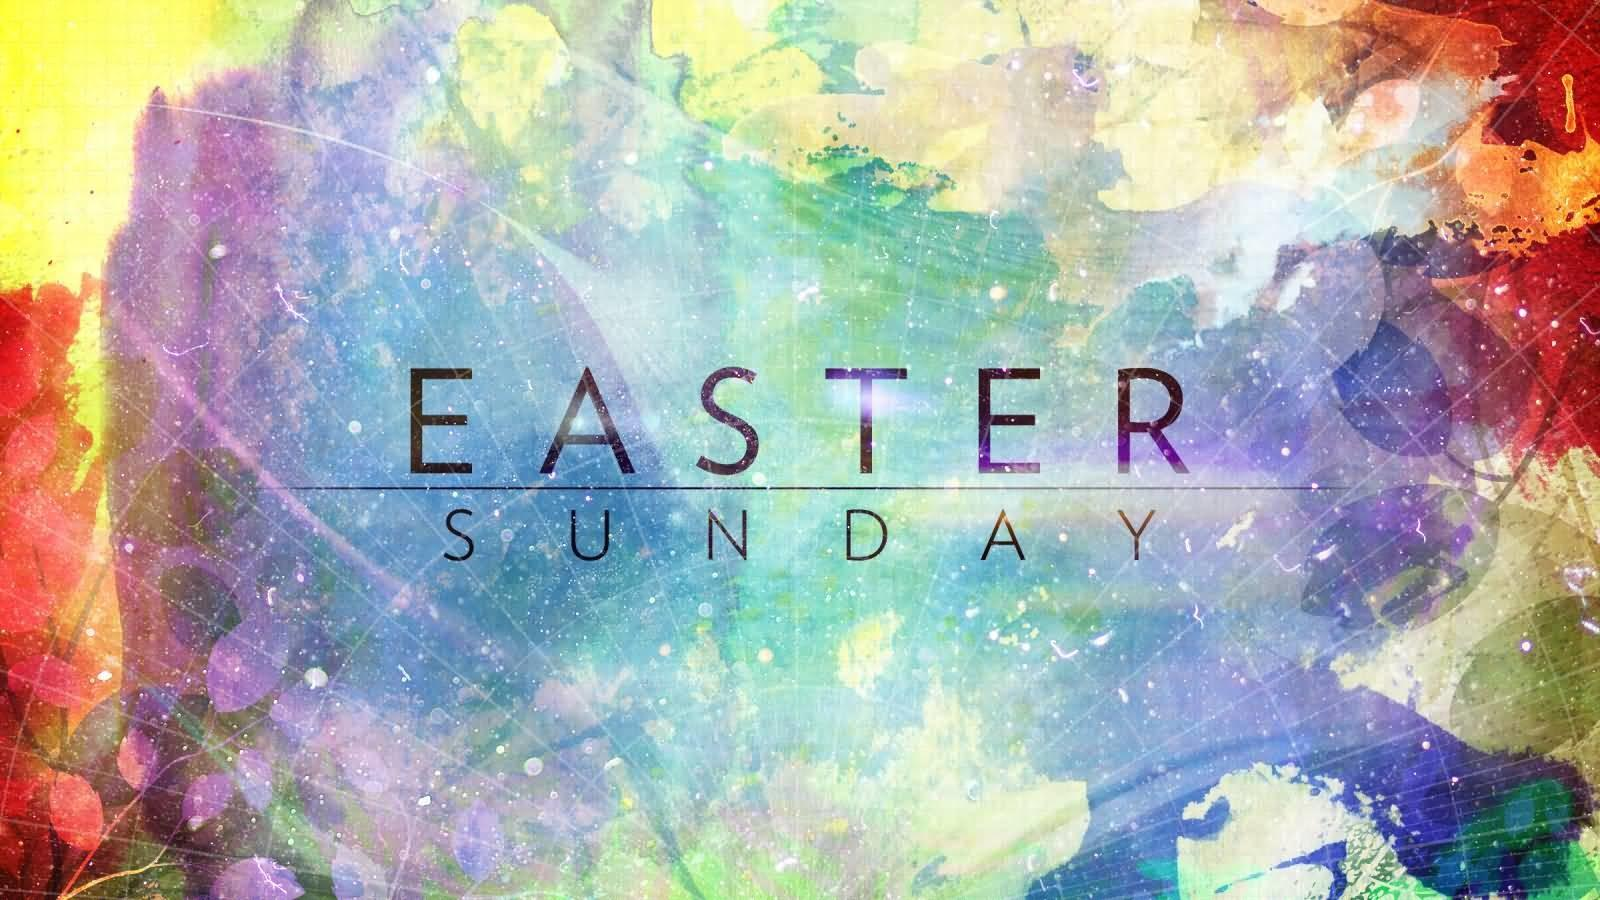 Easter Sunday Colorful Painted